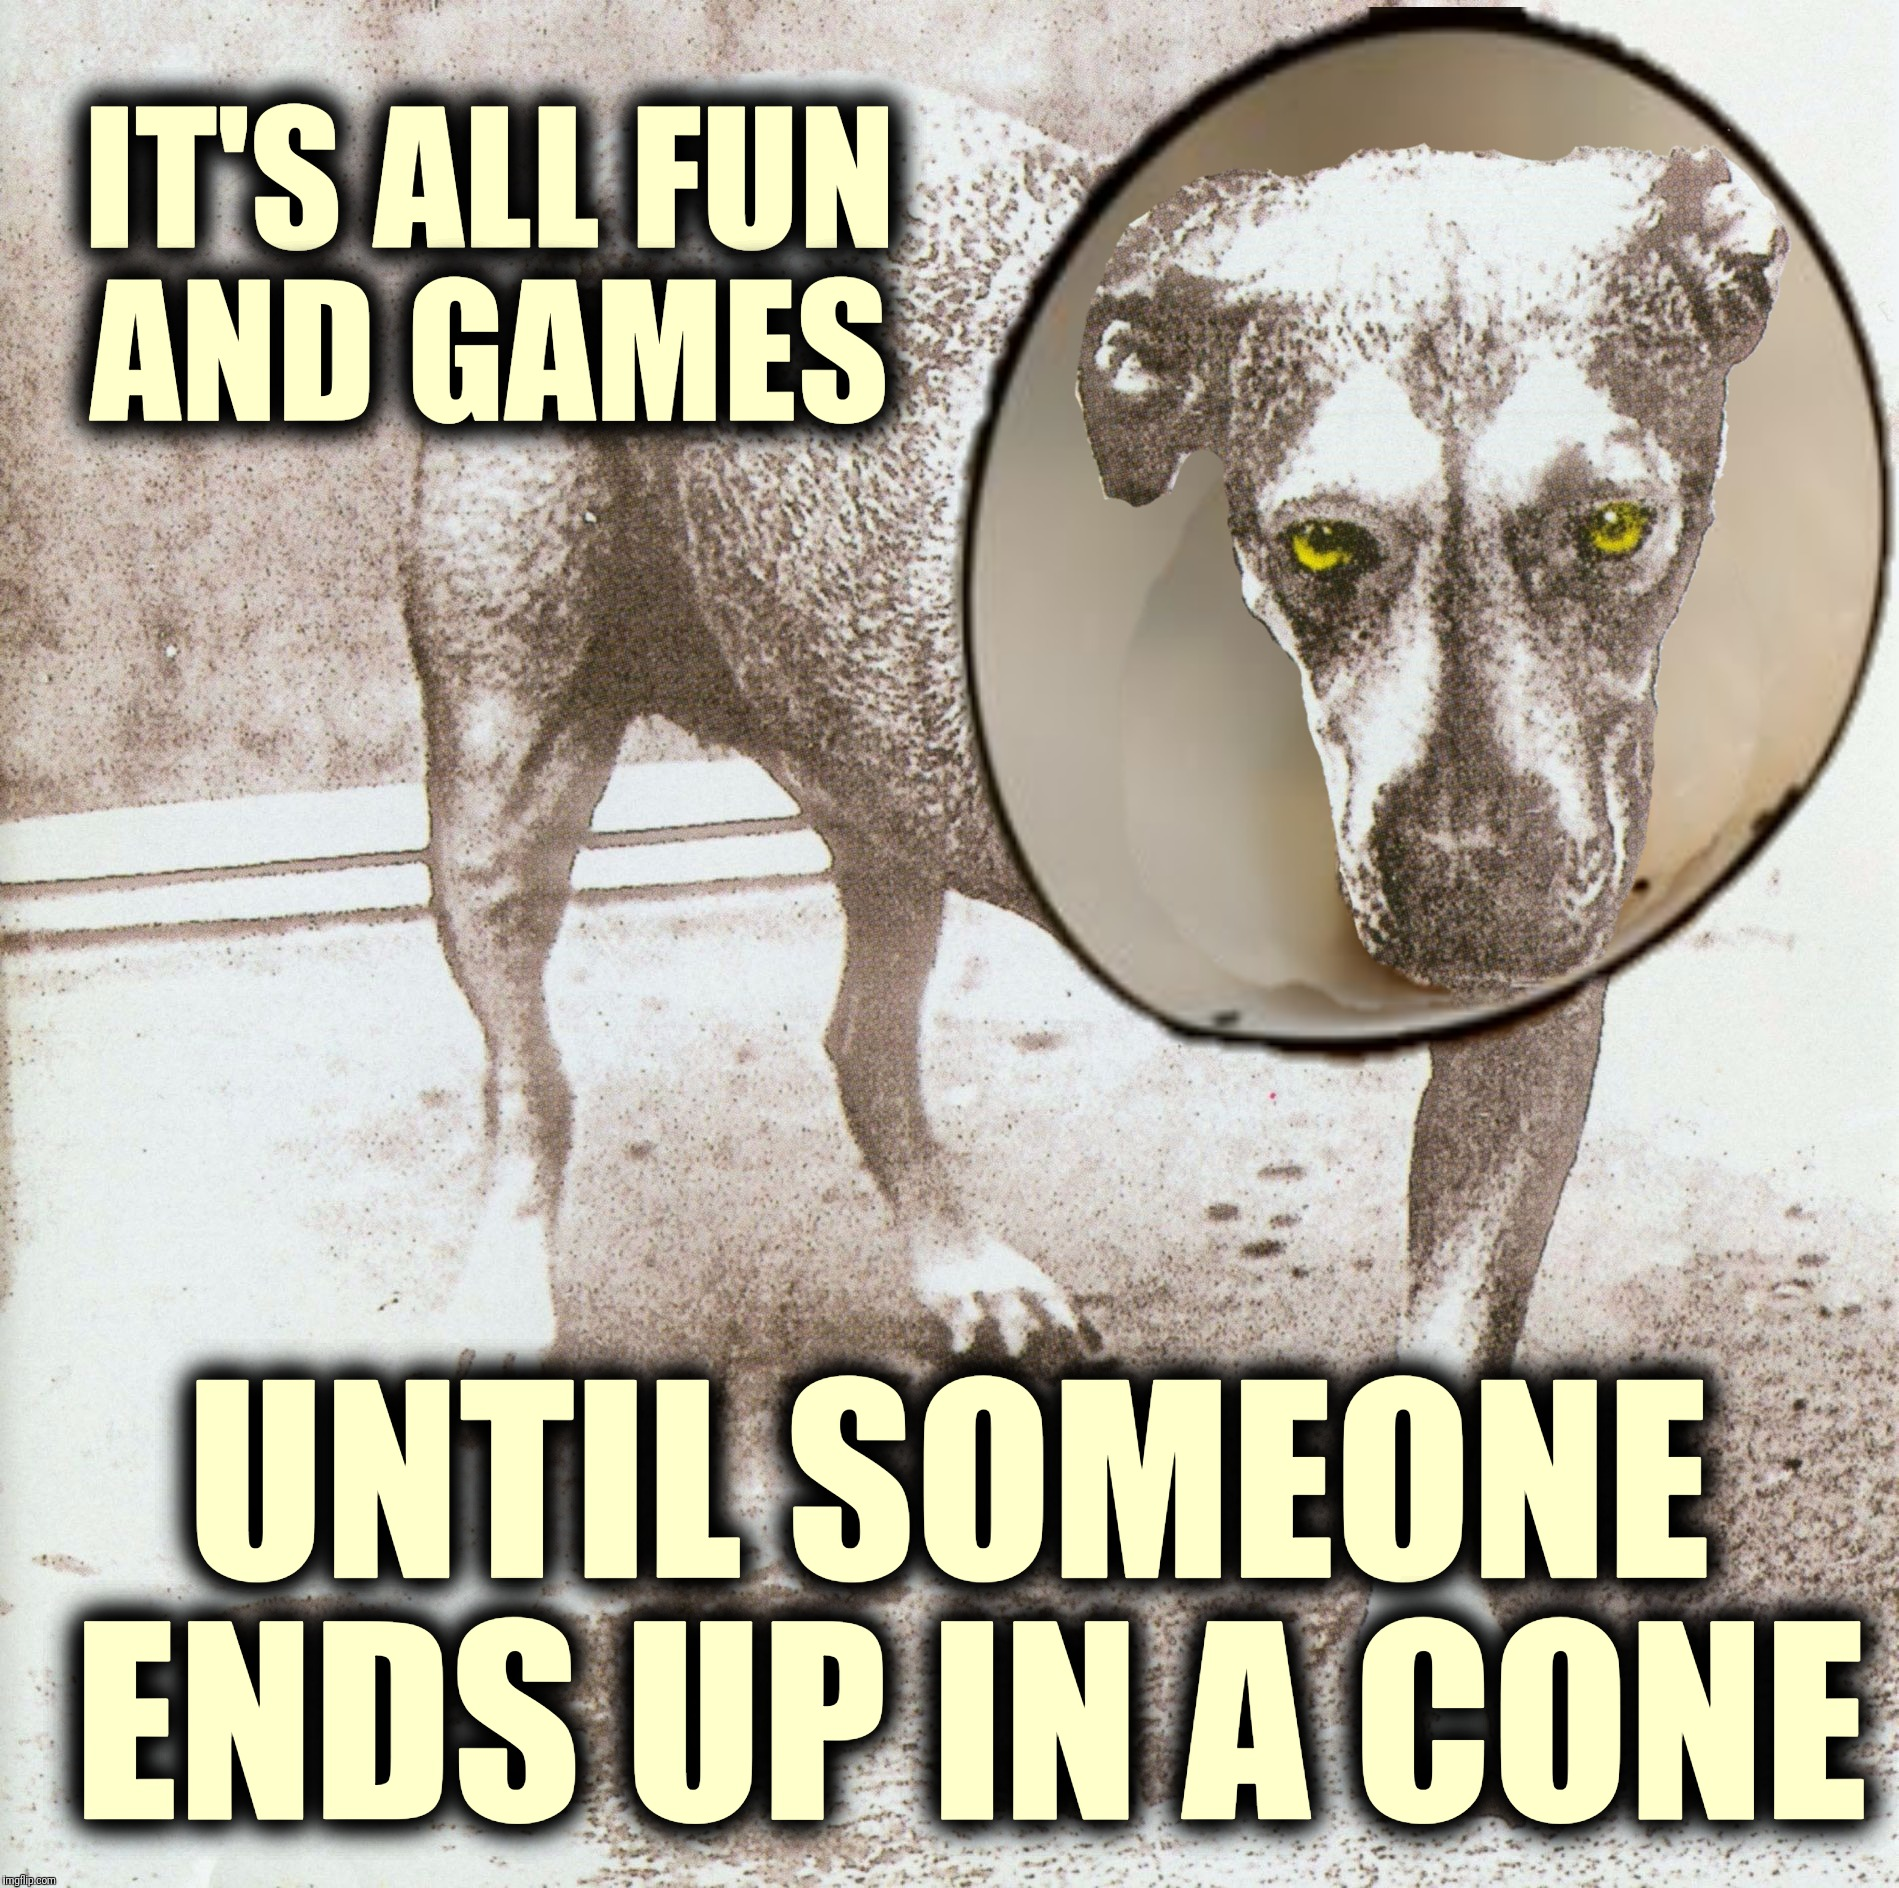 Some like it ruff | IT'S ALL FUN AND GAMES UNTIL SOMEONE ENDS UP IN A CONE | image tagged in memes,lucky the dog,sunshine,alice in chains,jerry cantrell | made w/ Imgflip meme maker